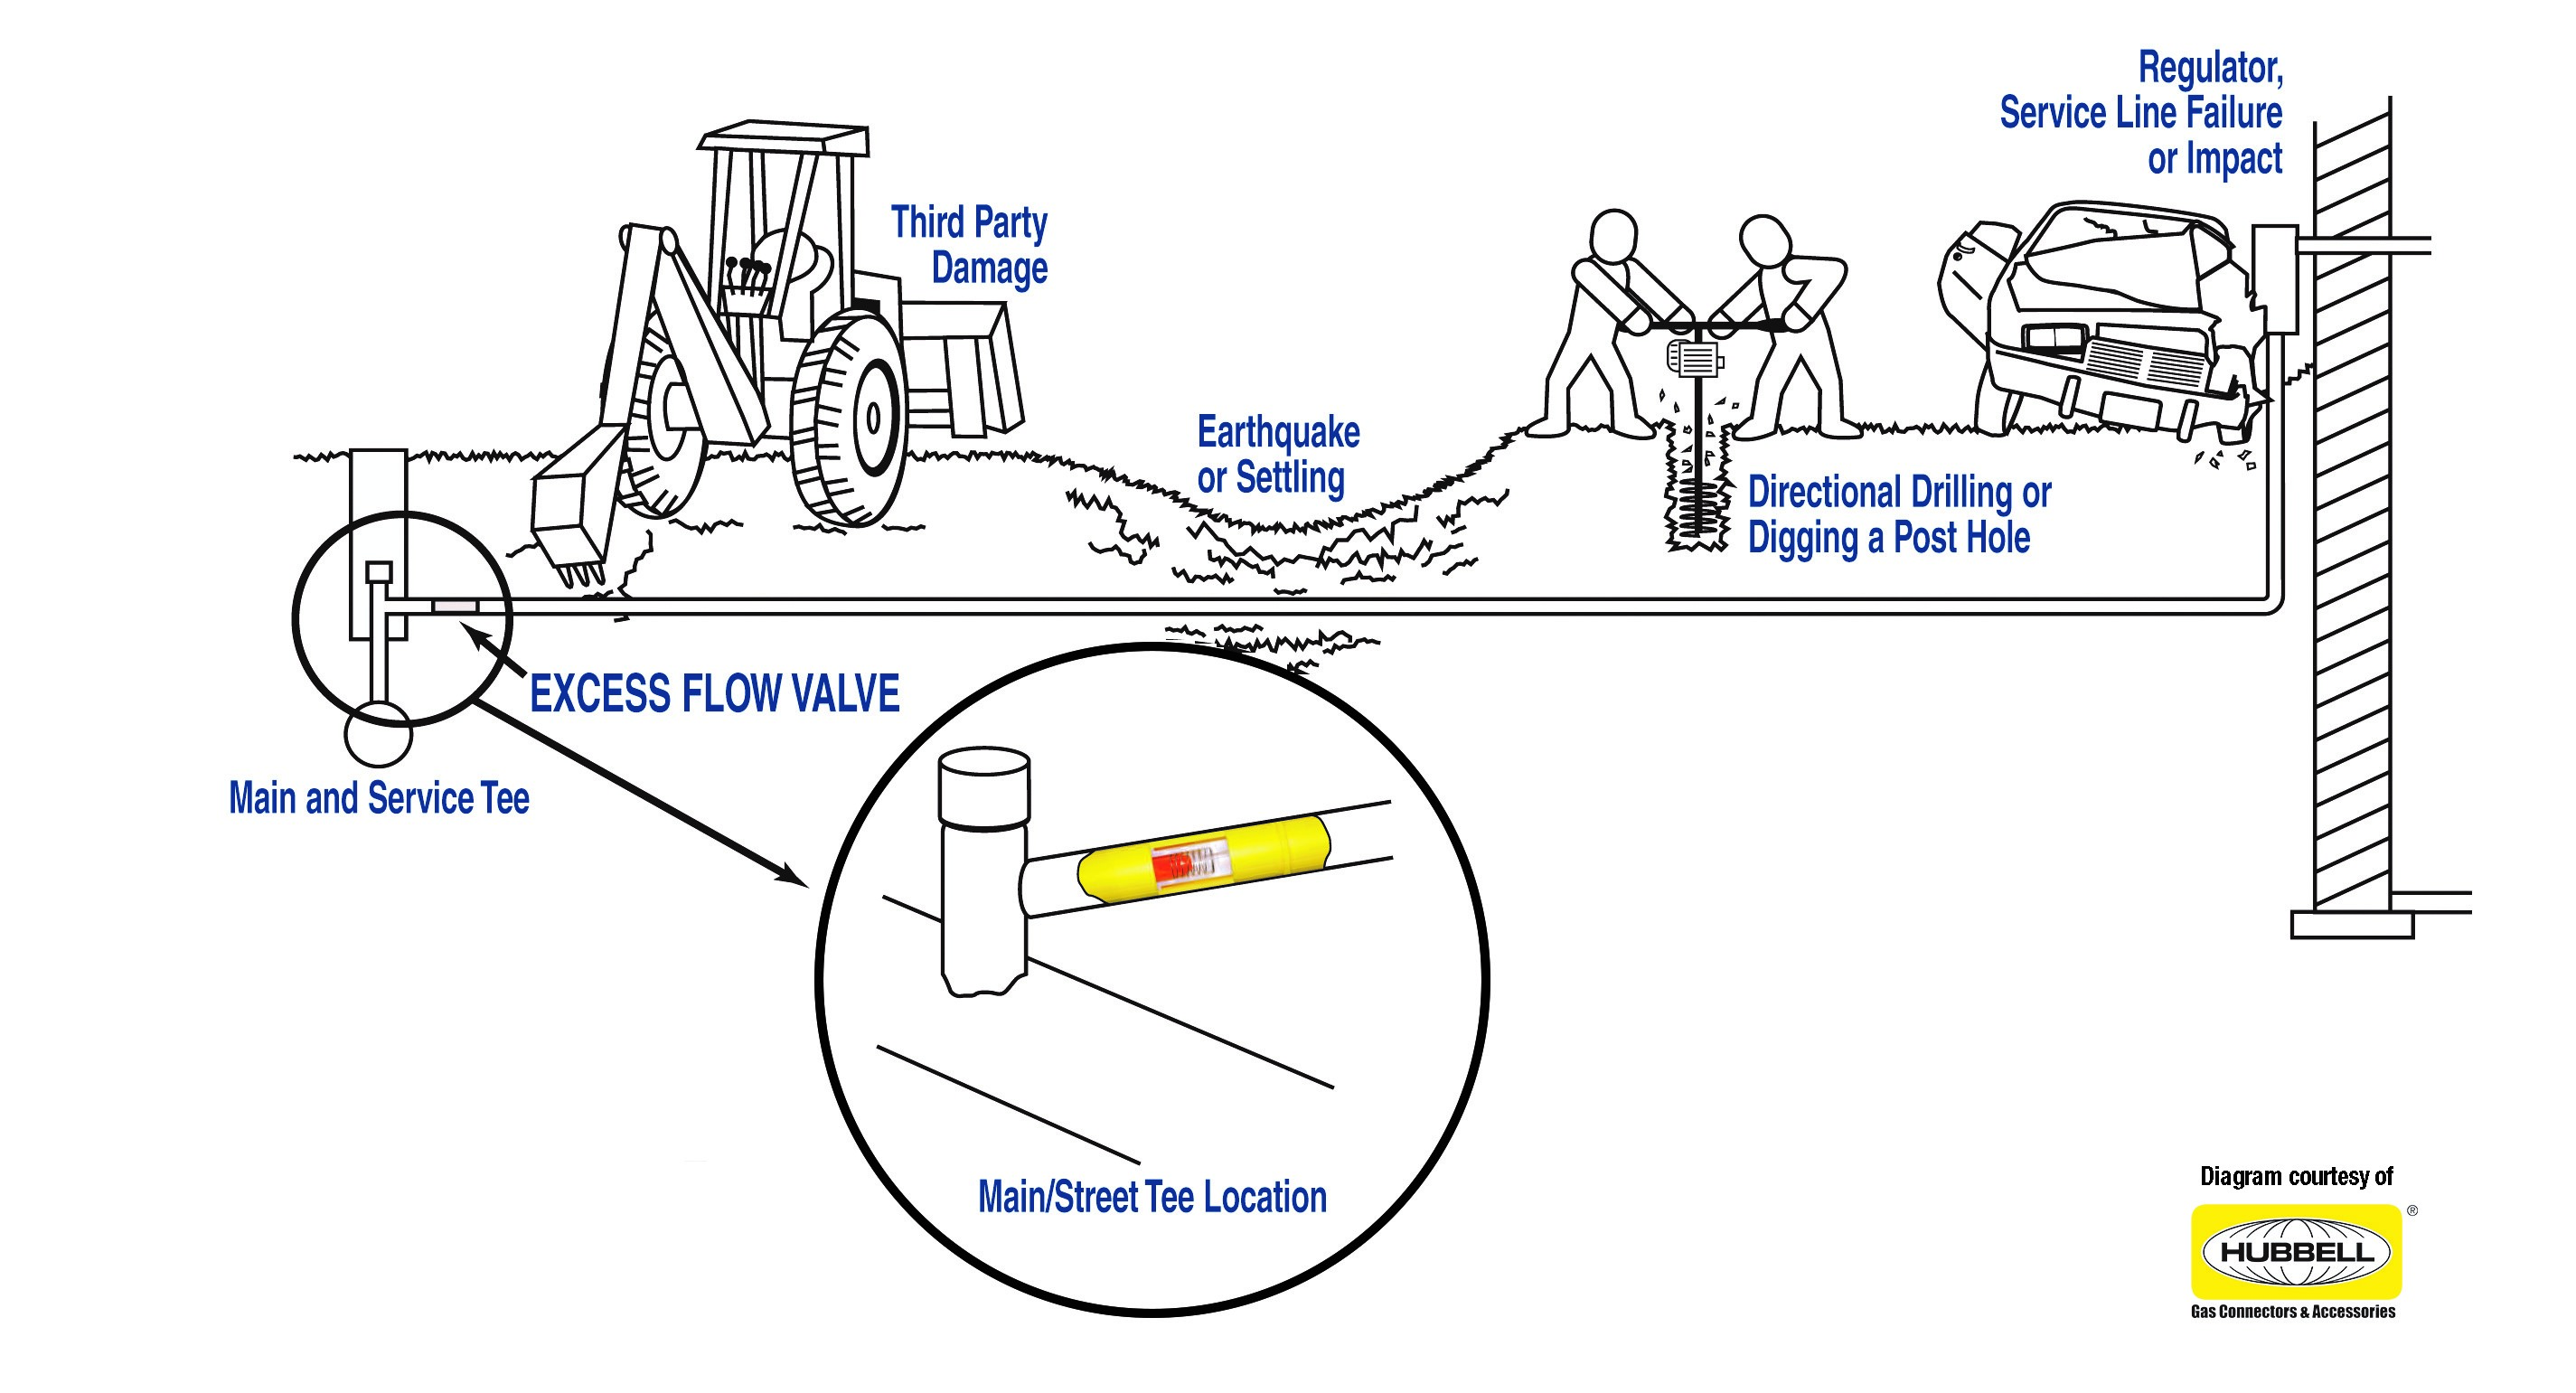 Excess Flow Valve Notification